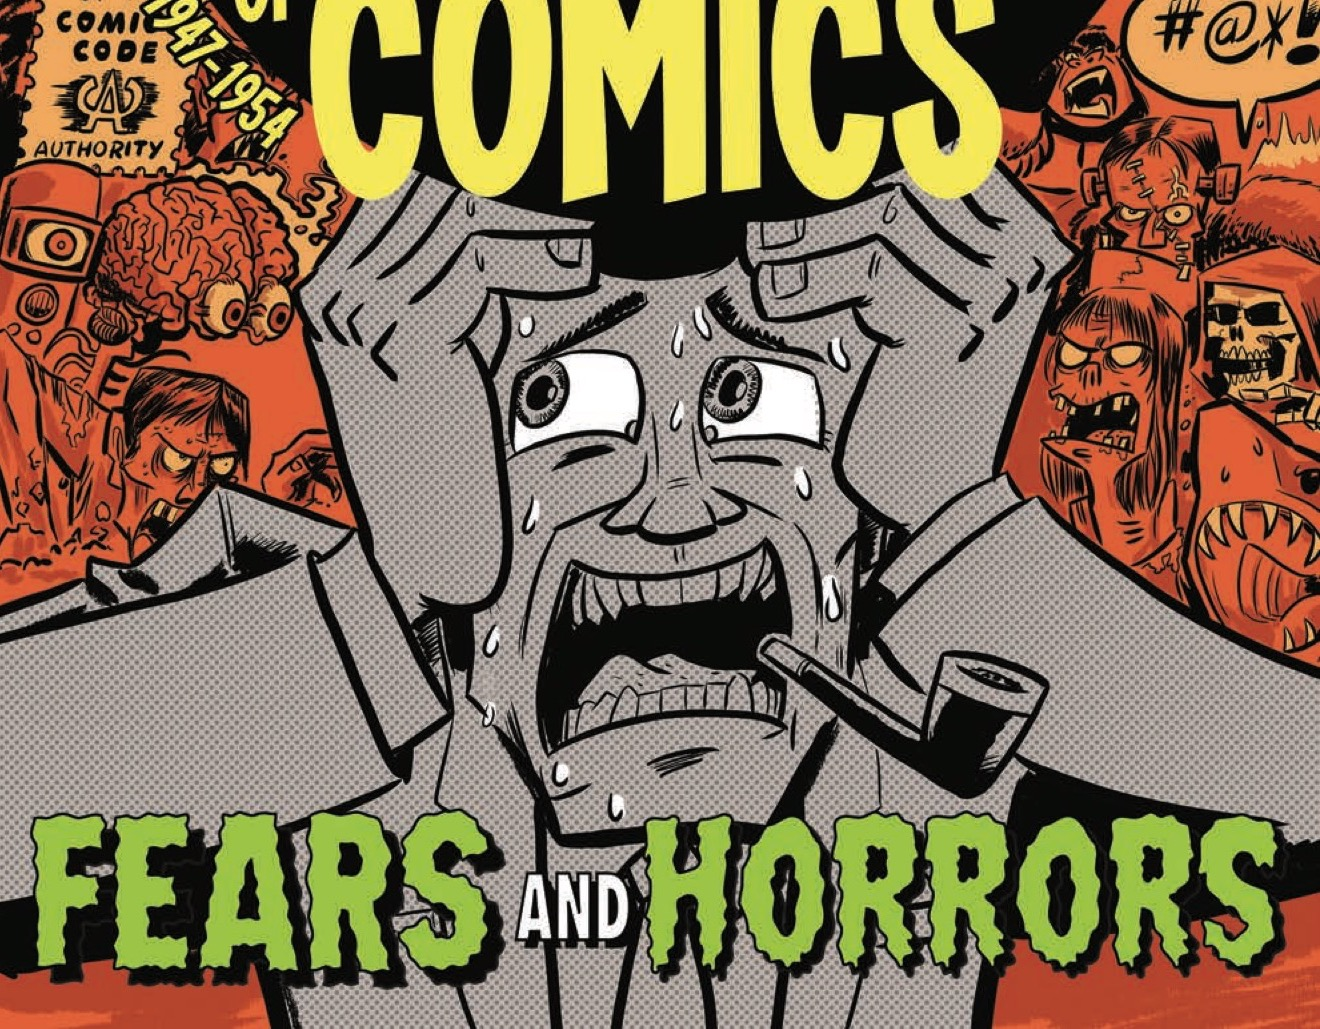 [EXCLUSIVE] IDW Preview: Comic Book History of Comics #4